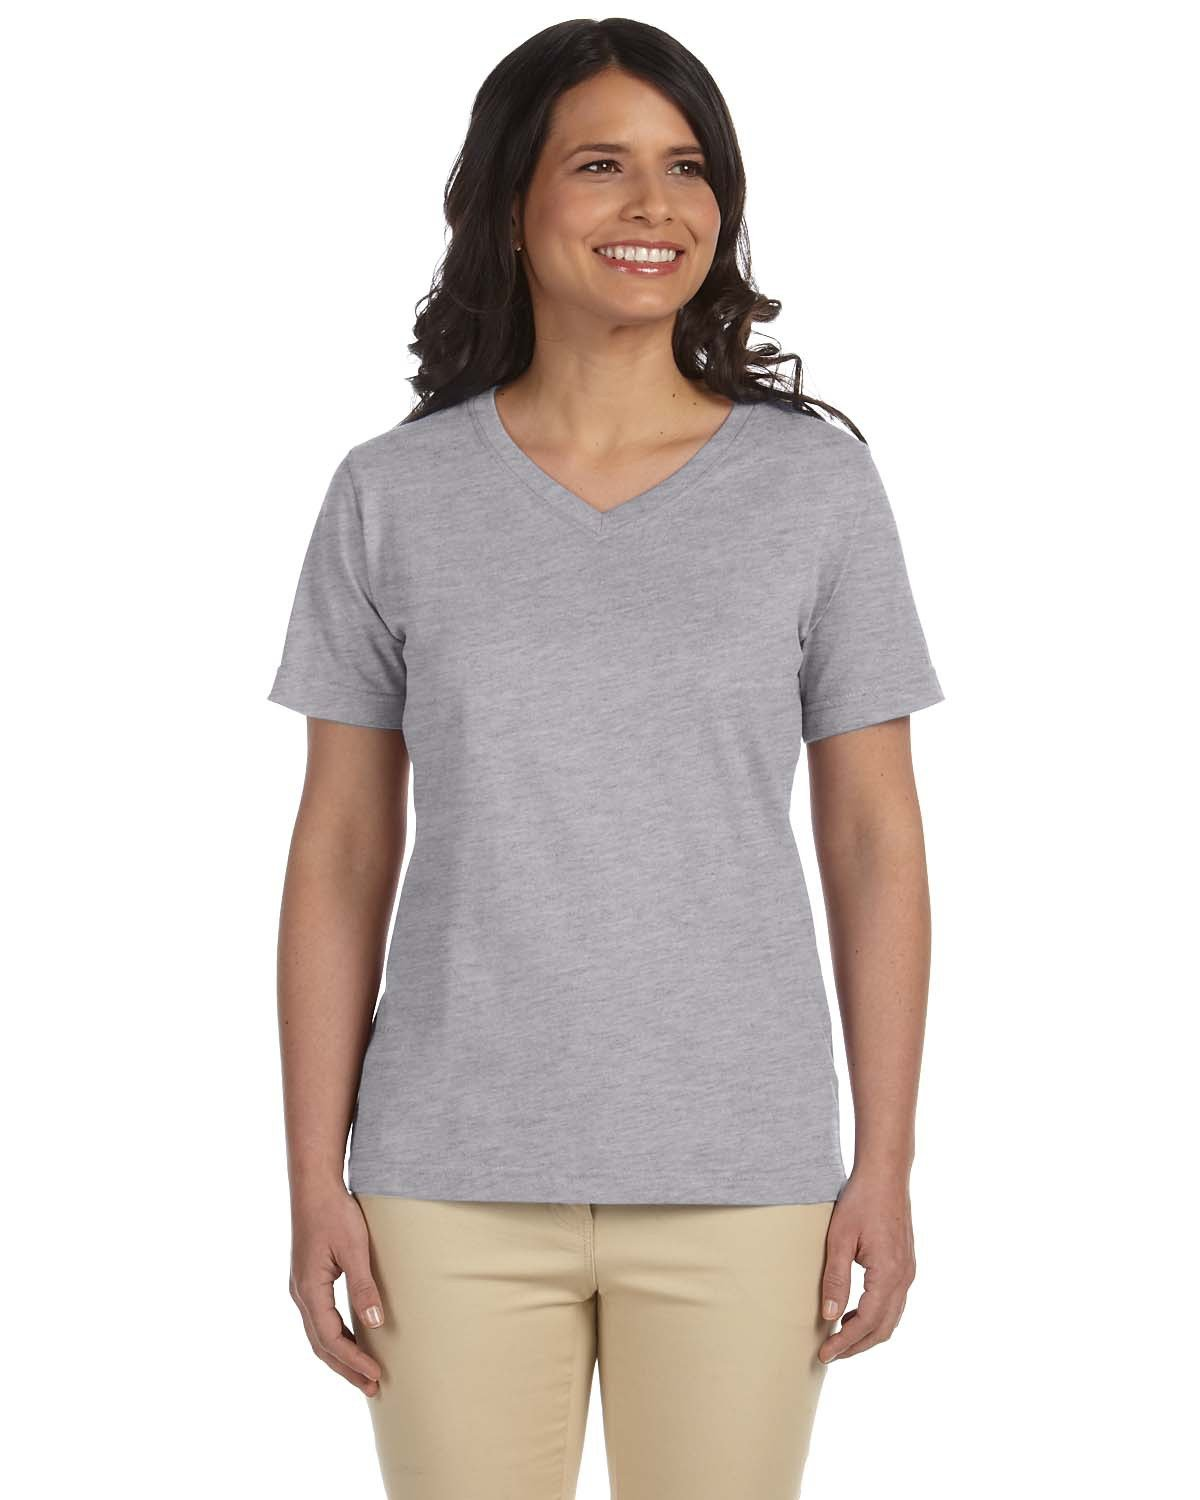 LAT Ladies' Premium Jersey V-Neck T-Shirt HEATHER